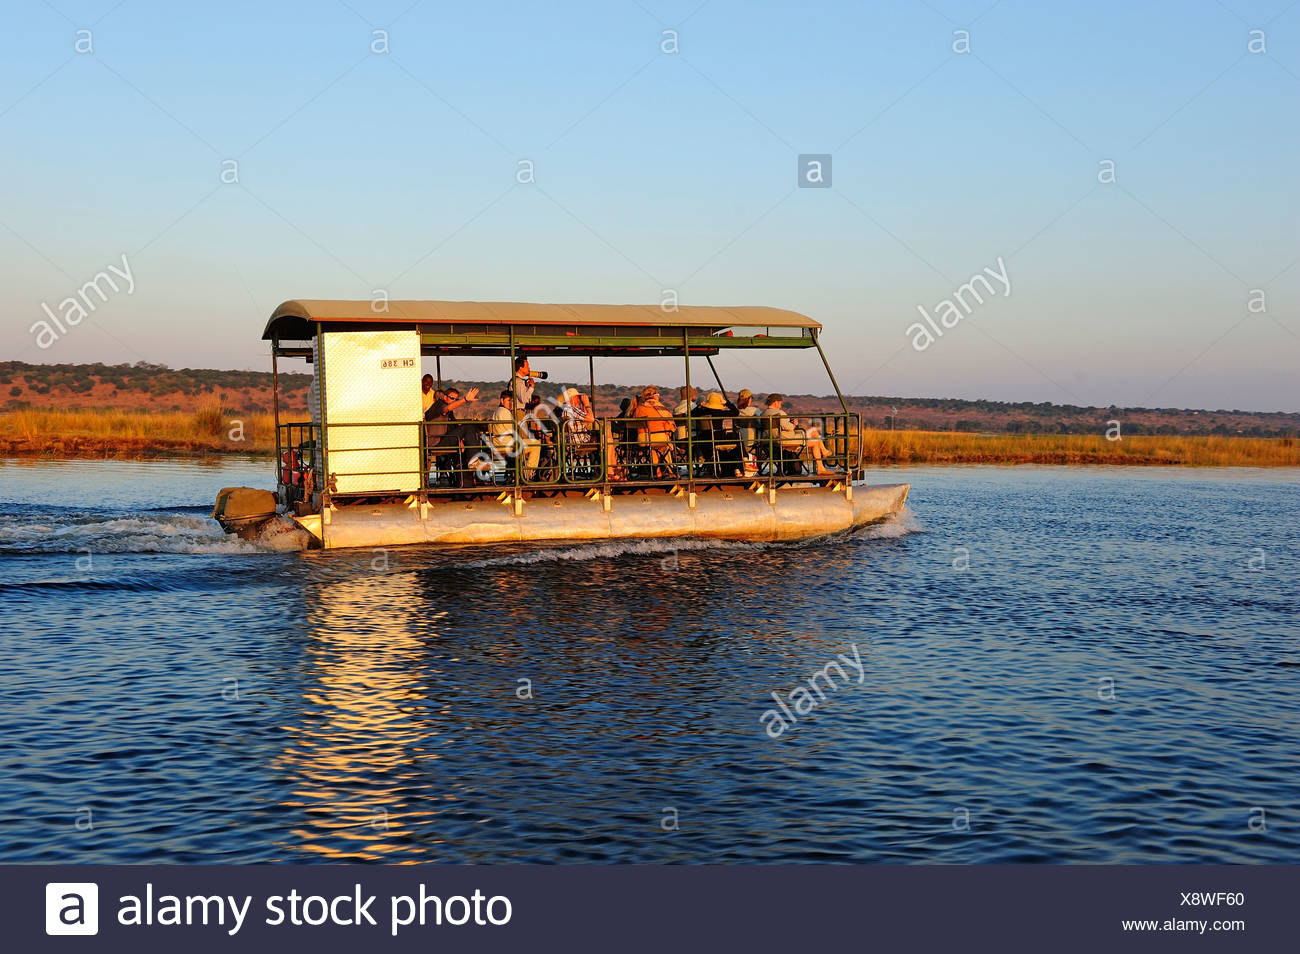 Africa, Botswana, Chobe, National Park, elephant, animal, safari, water, river, tour boat, tourist Stock Photo